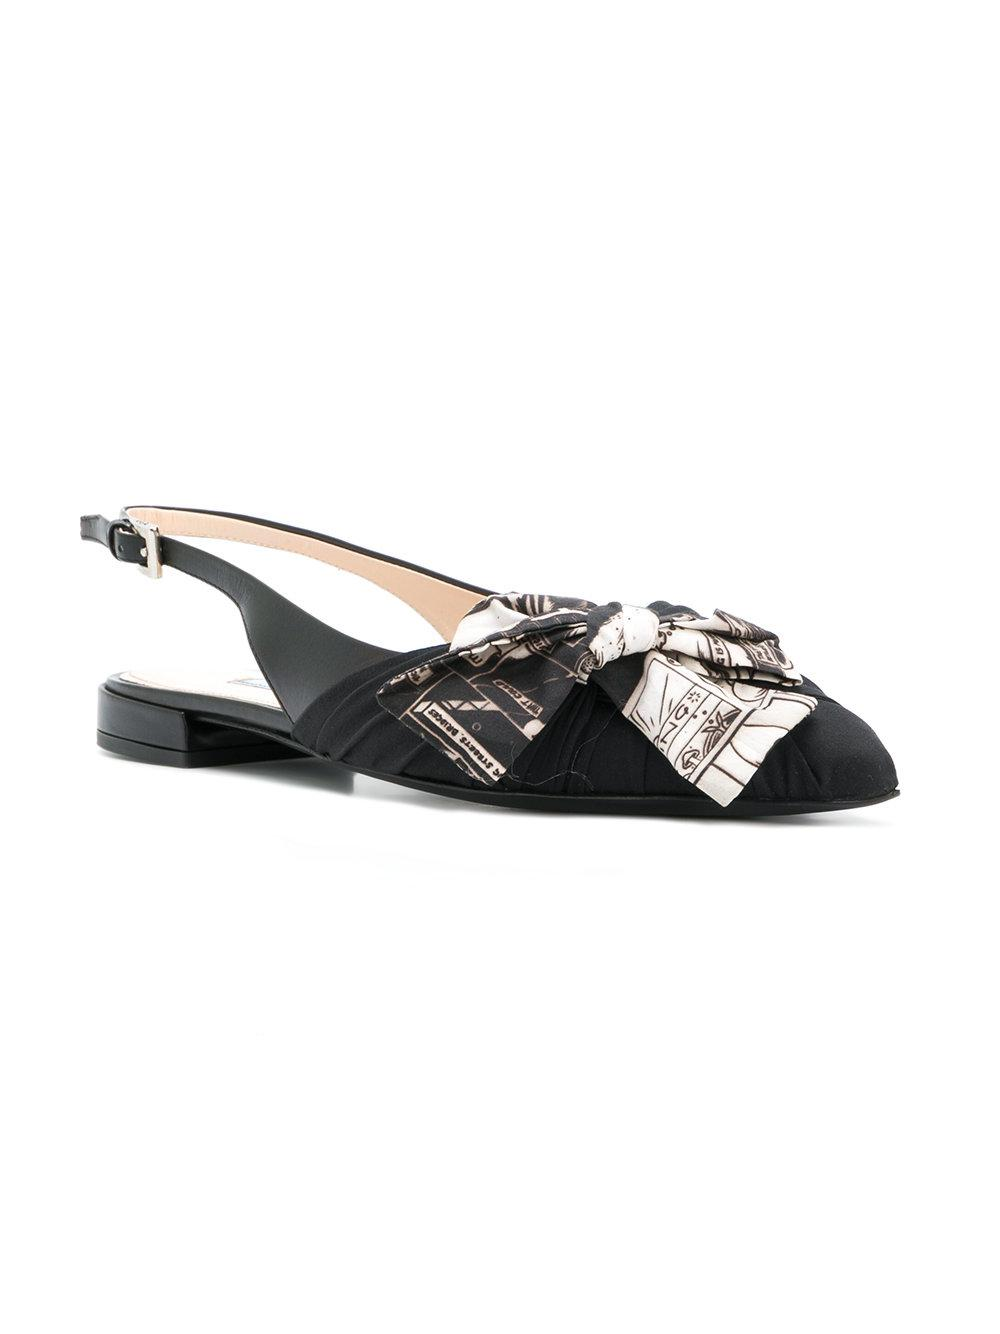 slingback bow sandals - Black Prada